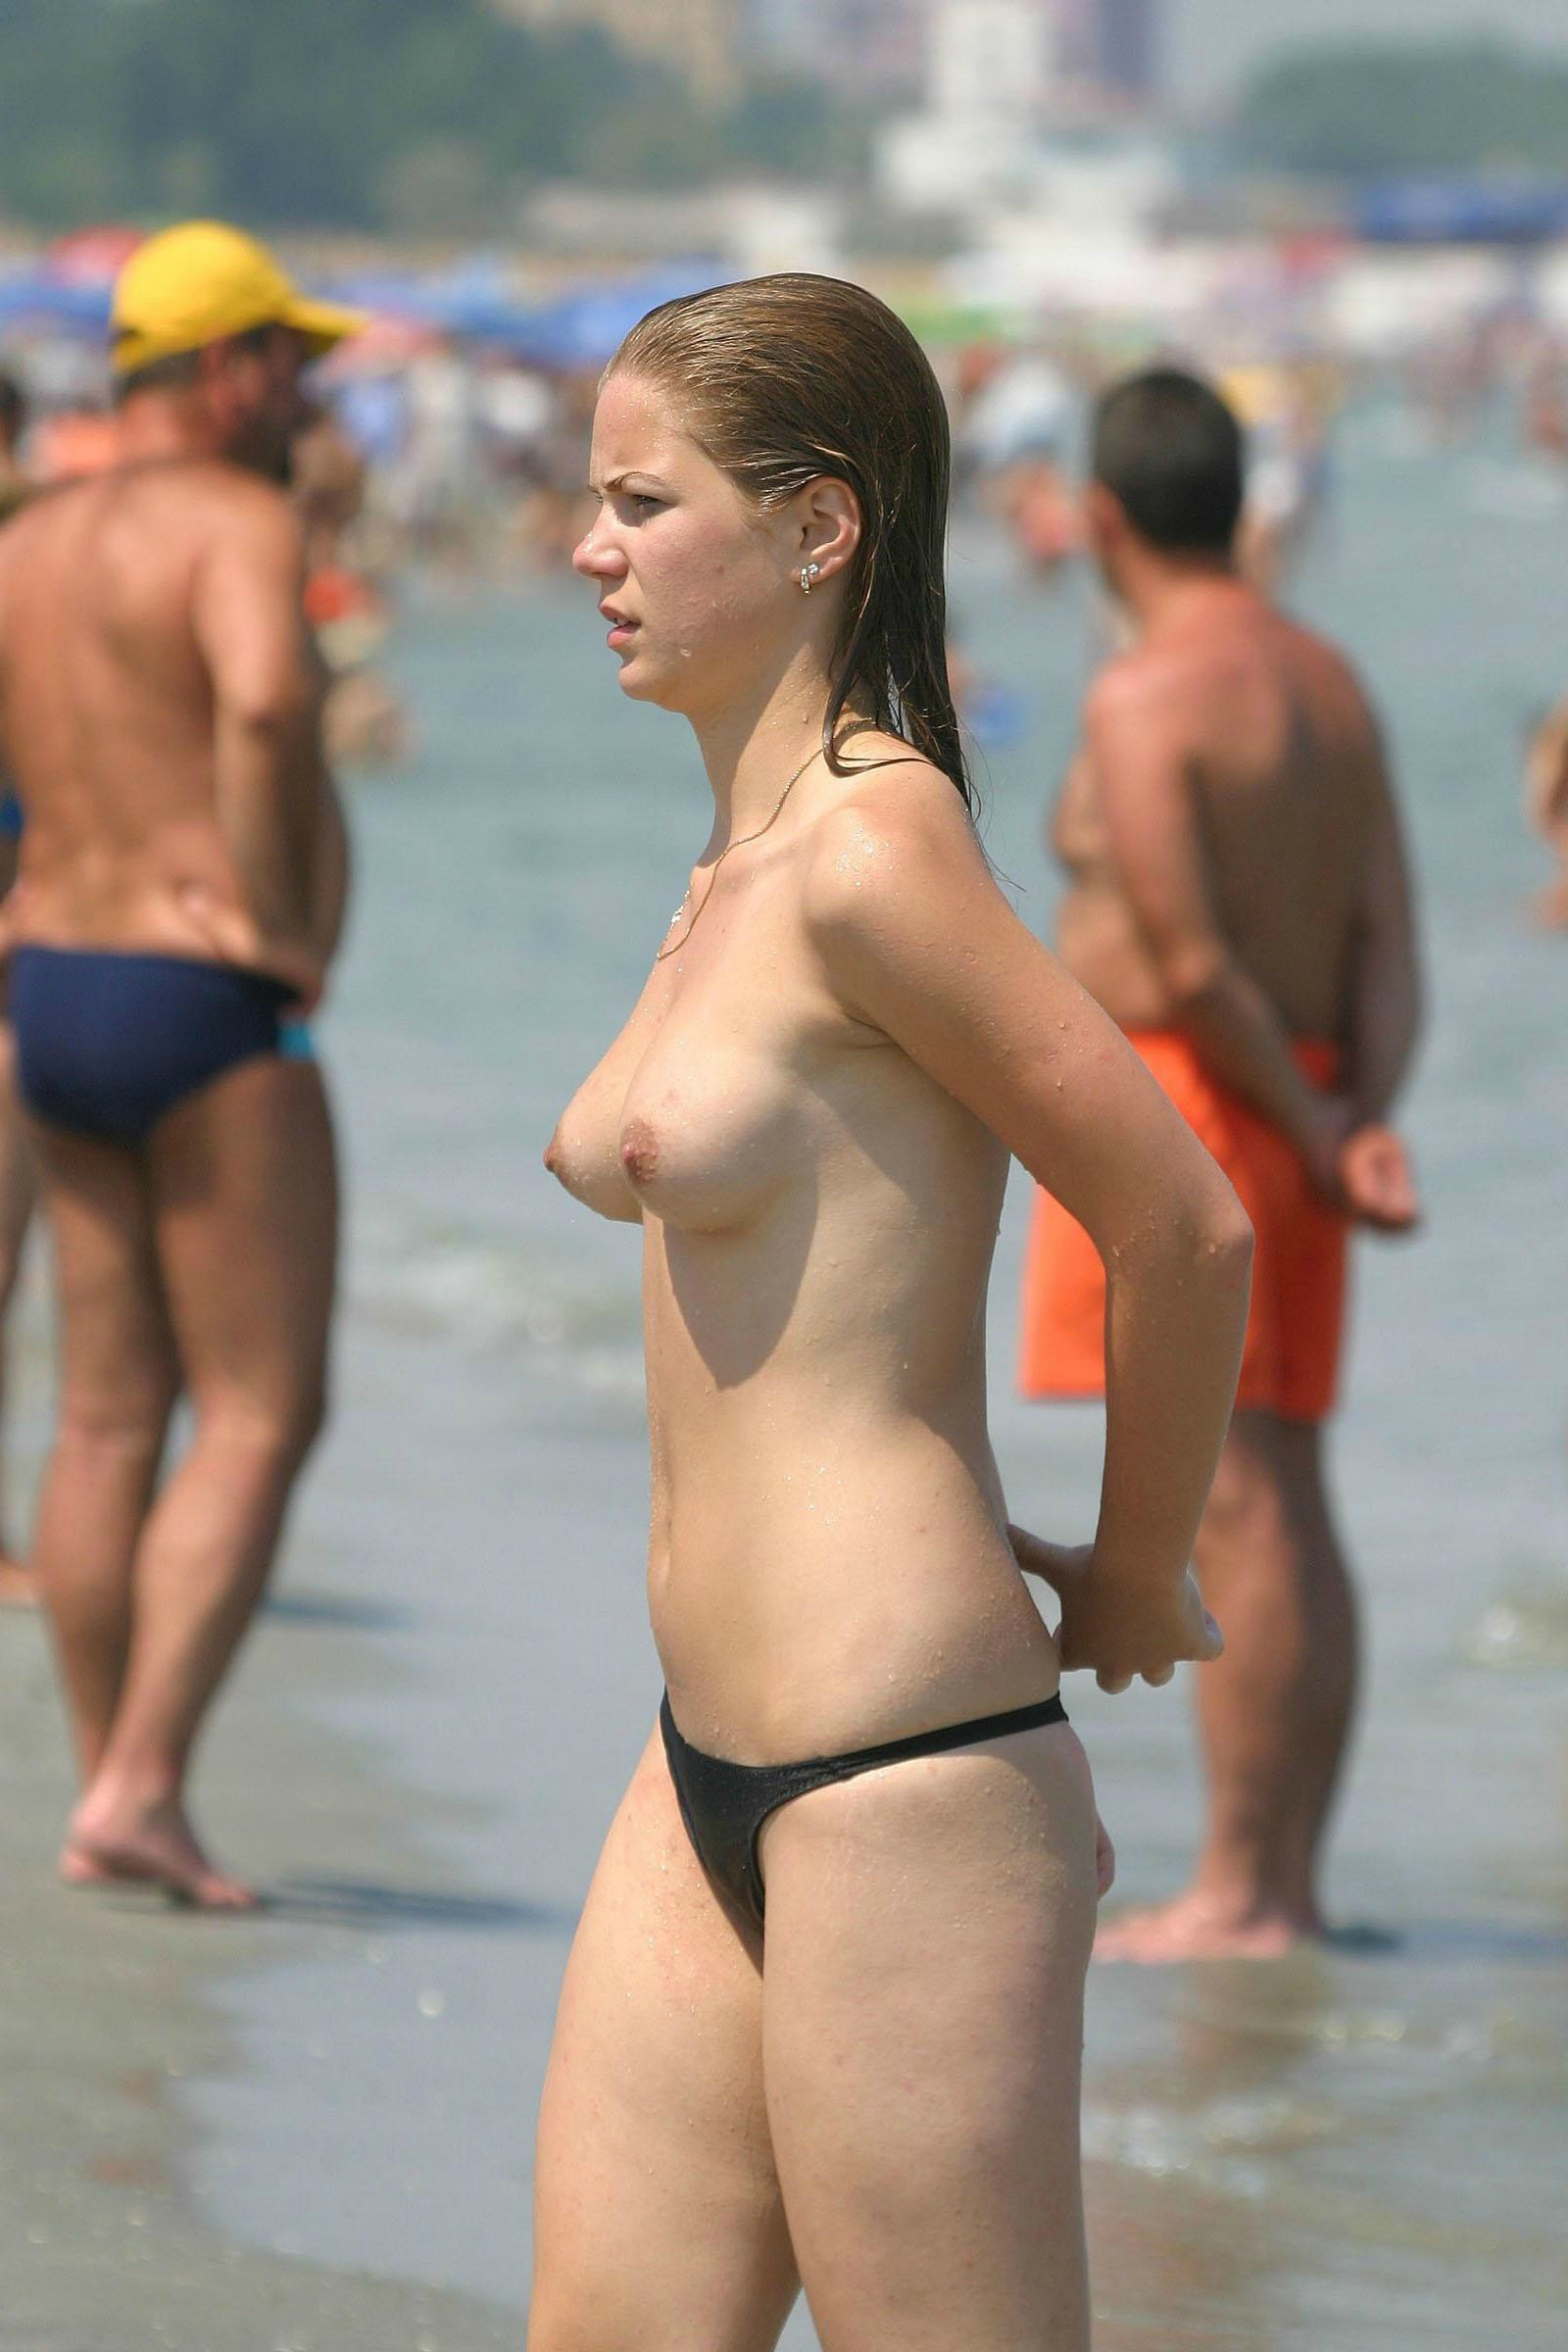 Topless hottie nude on a public beach